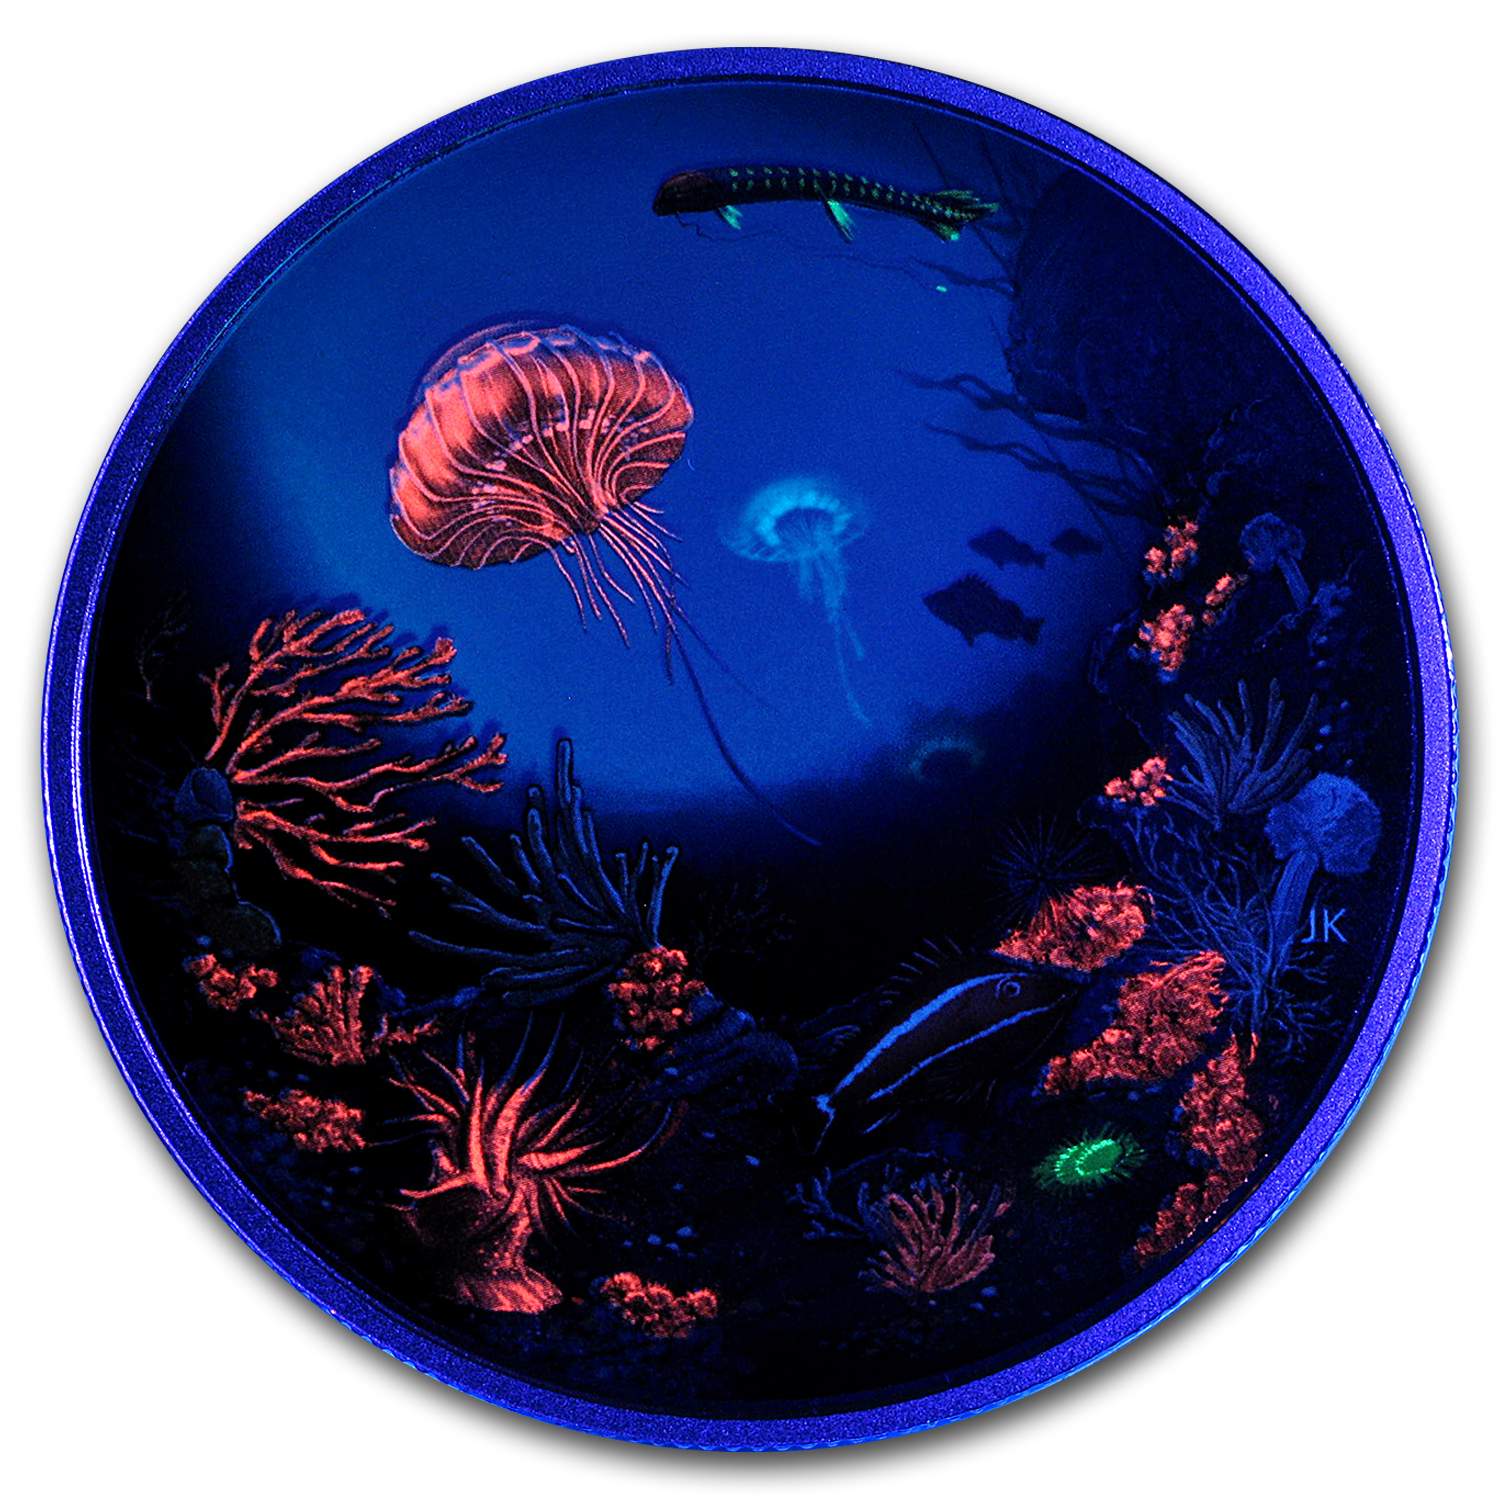 2016 Canada 2 oz Proof Silver $30 Illuminated Underwater Reef